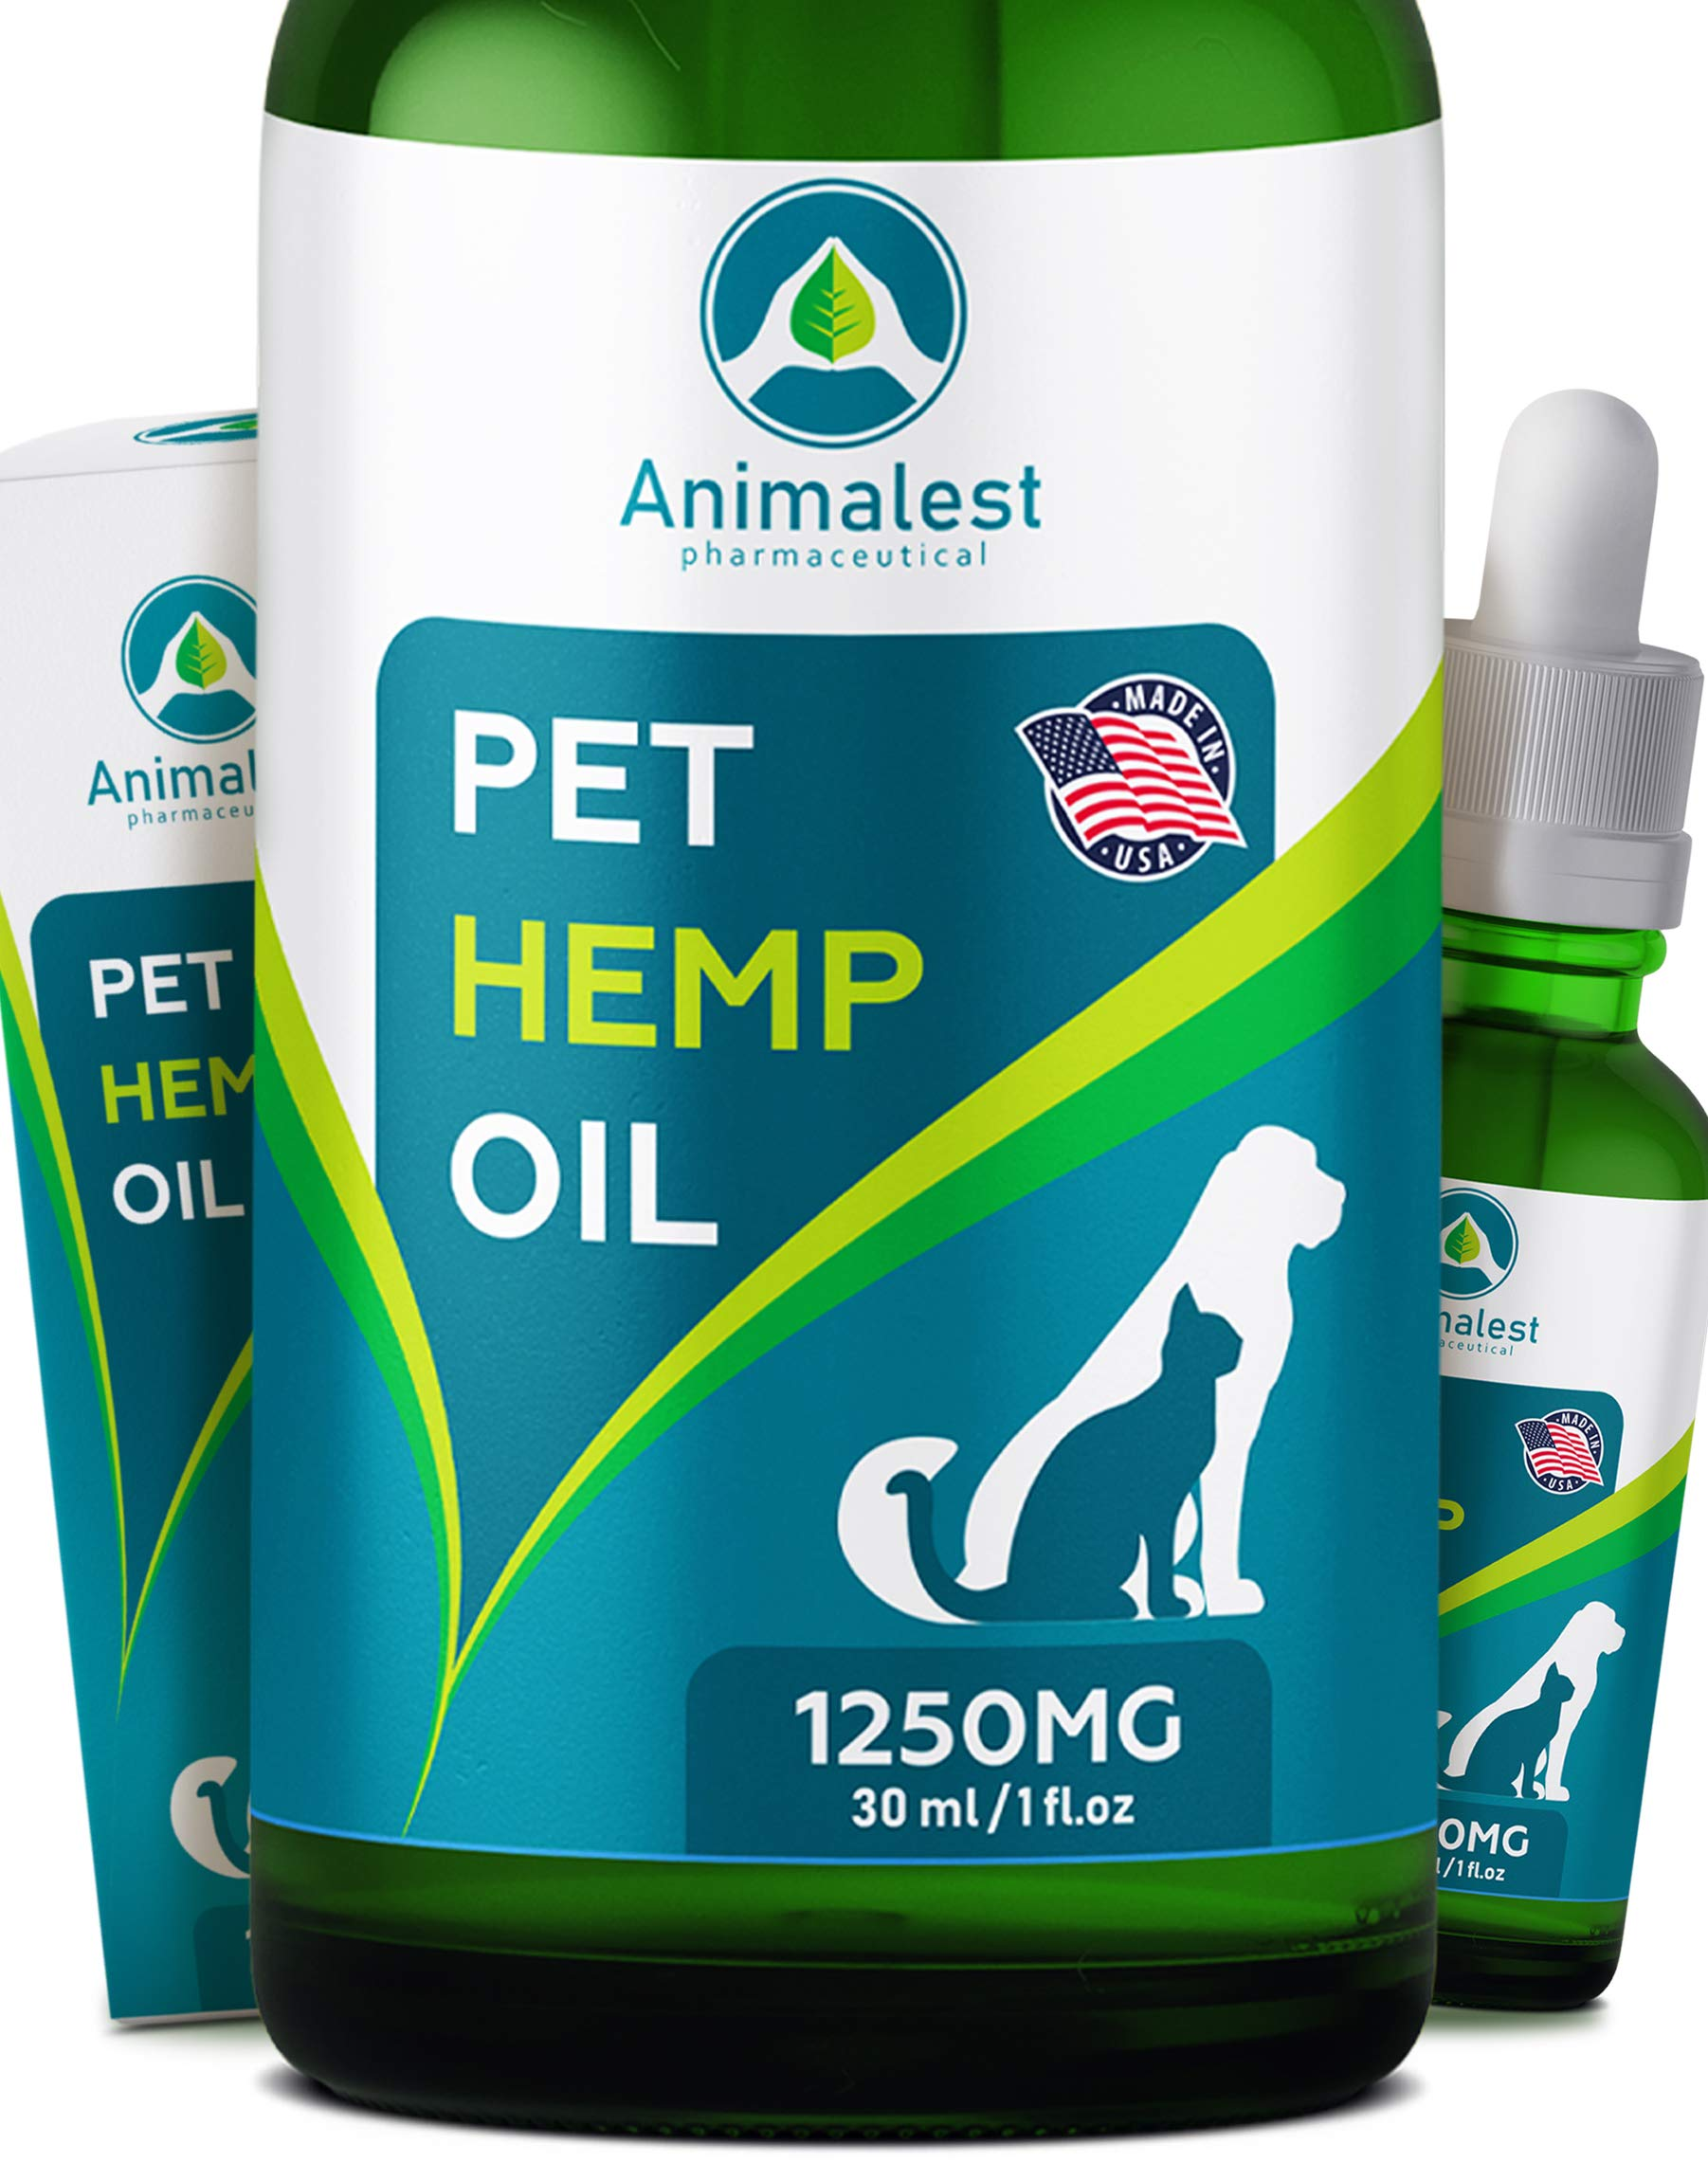 Animalest - Hemp Oil Dogs Cats - 1250 Mg - Relief Dog Cat Hemp Oil Calming Treats - Pets Anxiety Tension Hip Seizures Joint Pain Remedy Arthritis Sleep Stress - Omega 3,6,9 Pet Vitamins - 6in1 Drops by Animalest